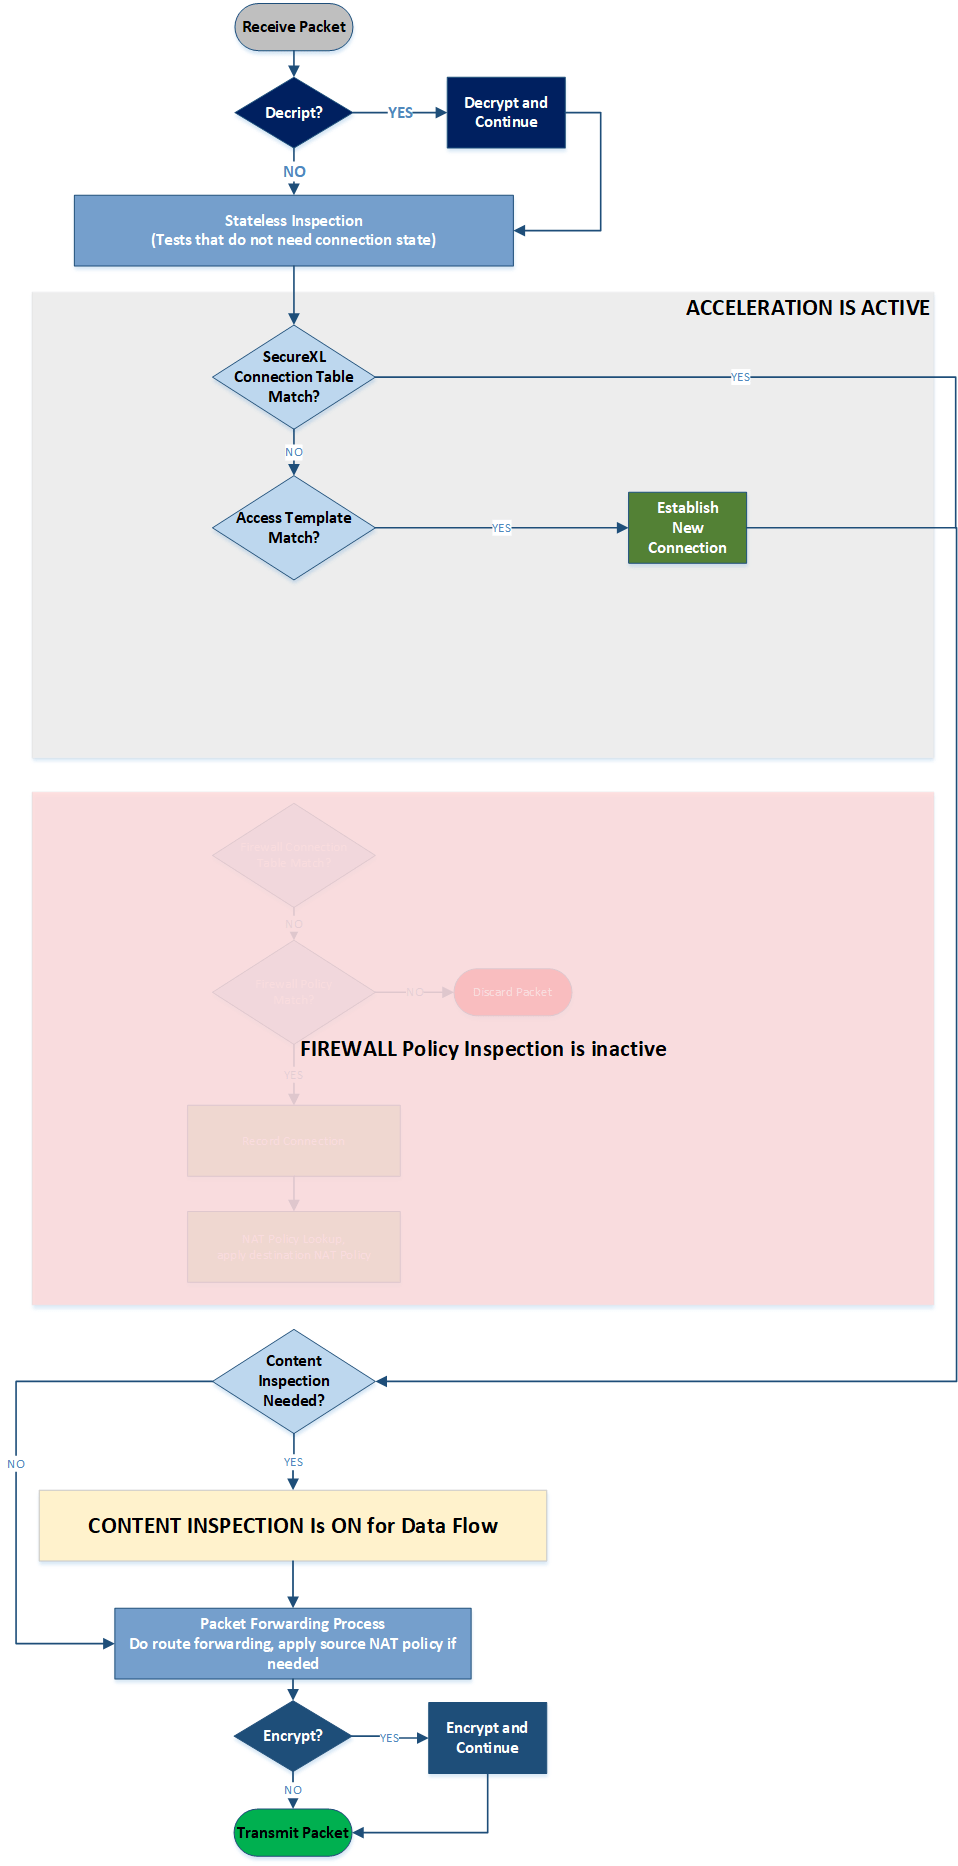 medium resolution of diagram 5 medium path flow